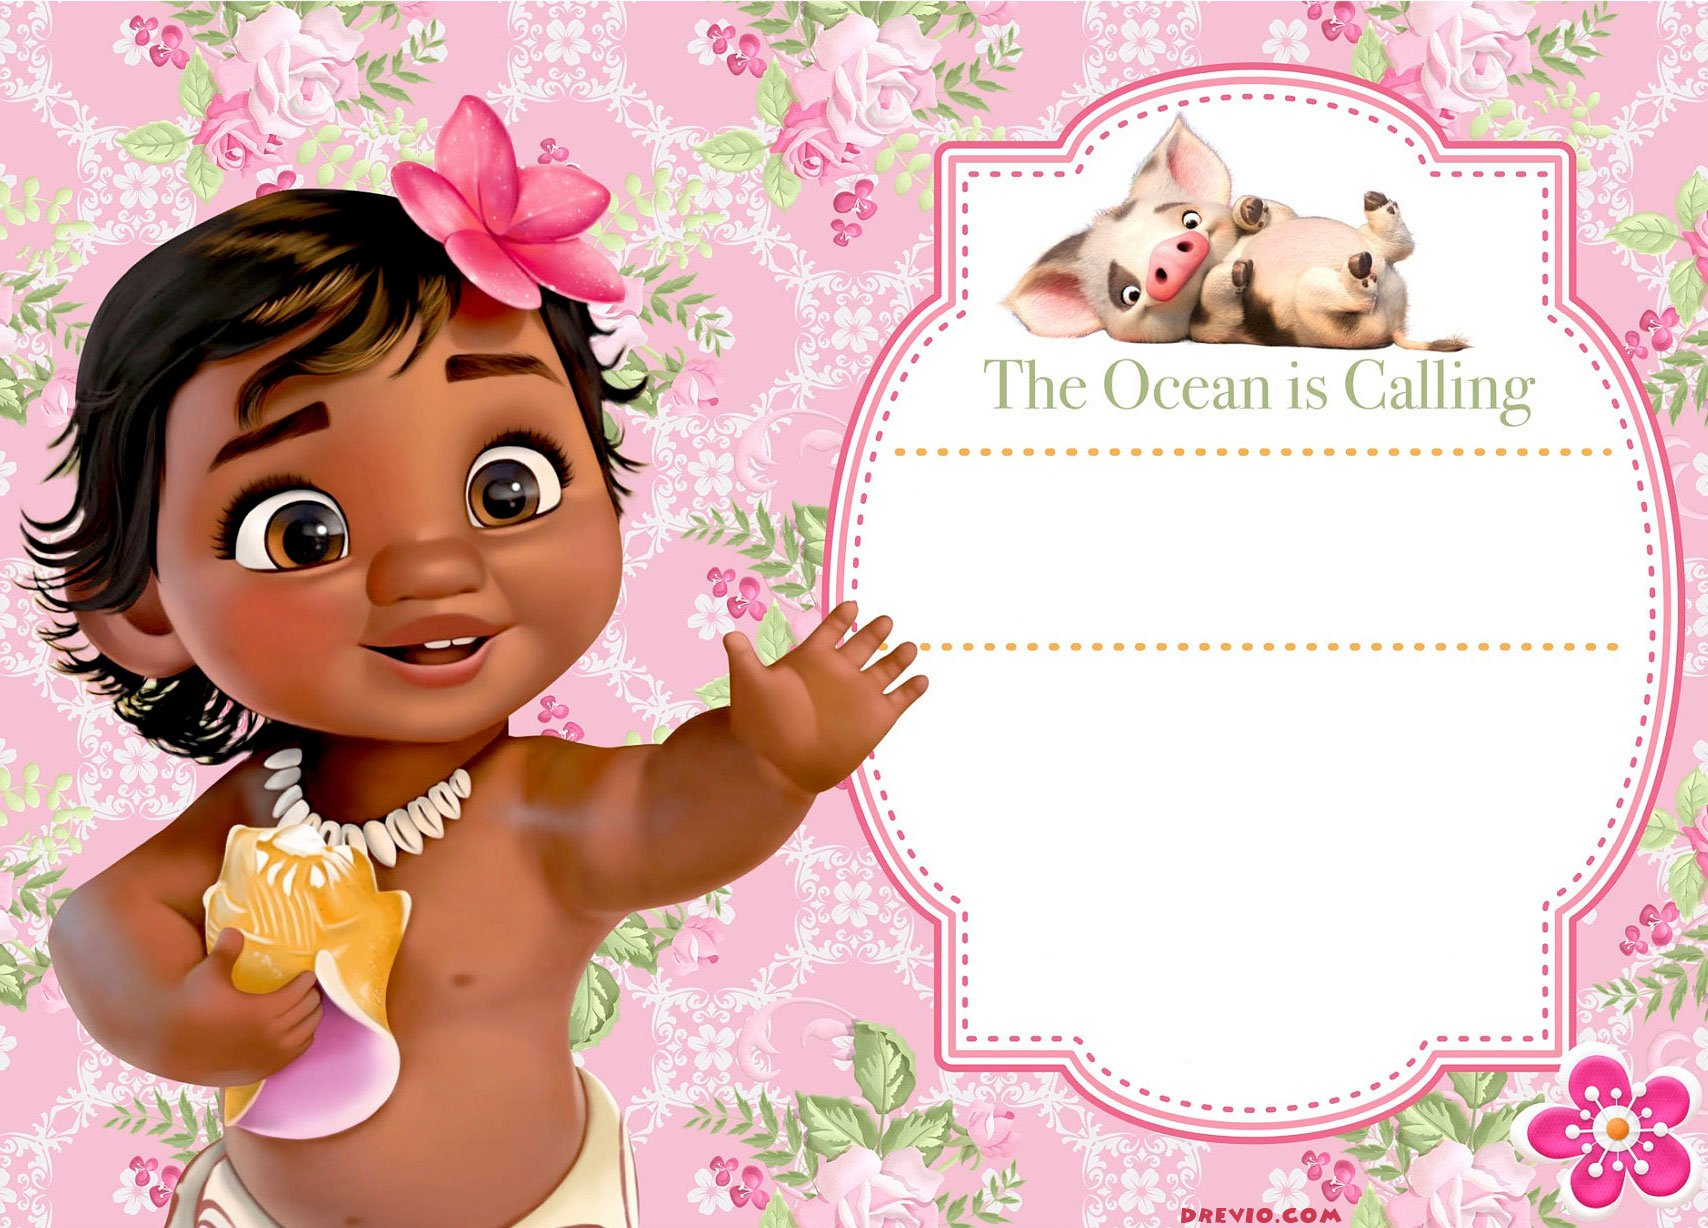 photo regarding Printable Moana Invitations identified as Absolutely free Moana Birthday Invitation Template - Totally free Invitation